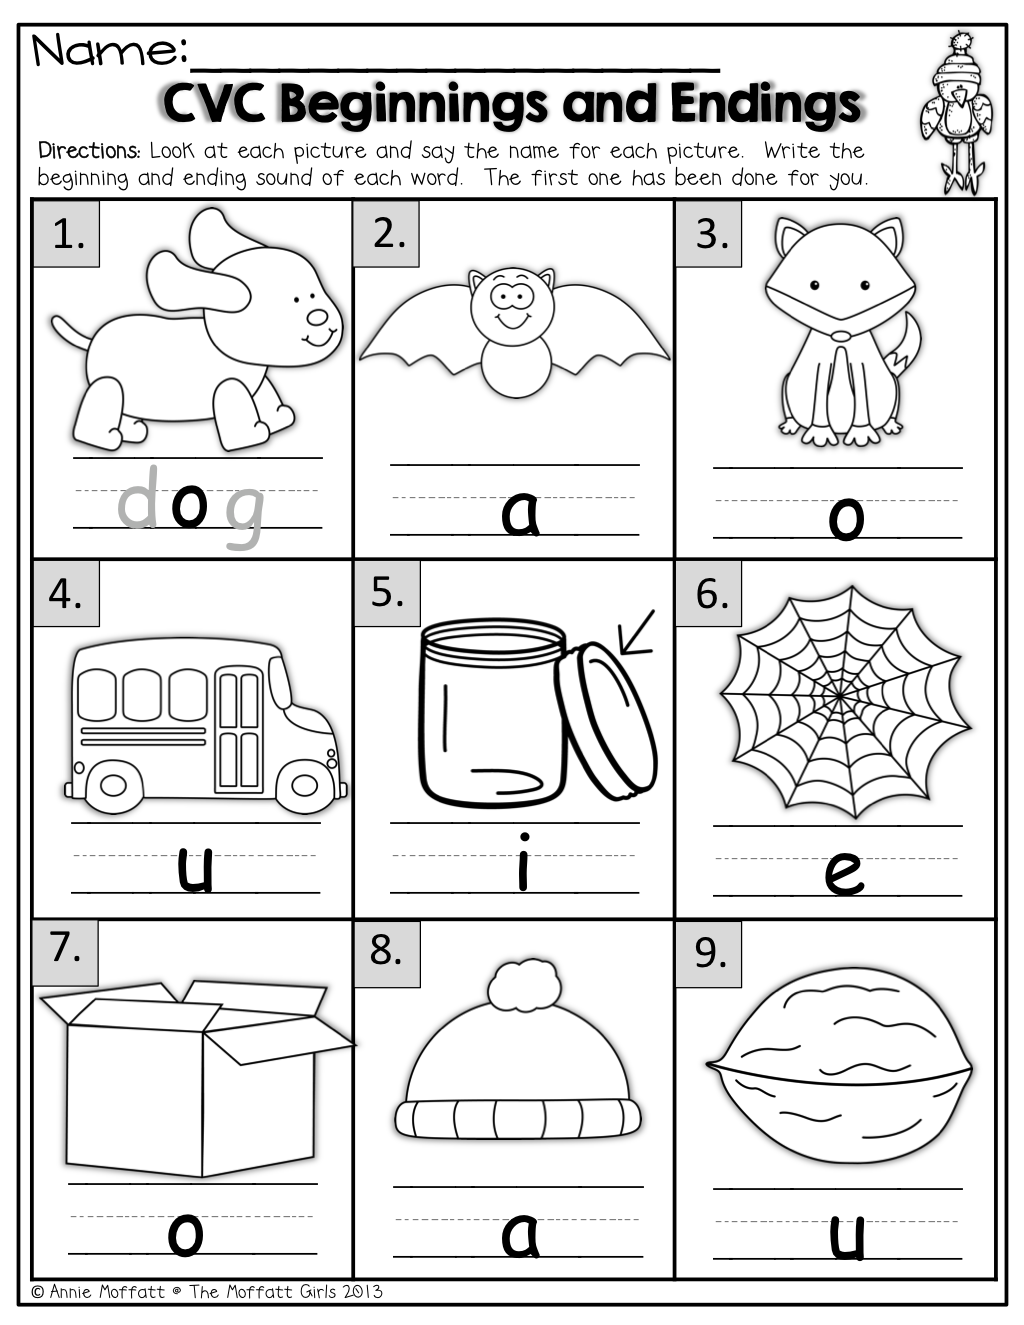 Worksheets Beginning And Ending Sounds Worksheets cvc beginning and endings kinderland collaborative pinterest ending sounds for words my student could use the opposite find middle vowel